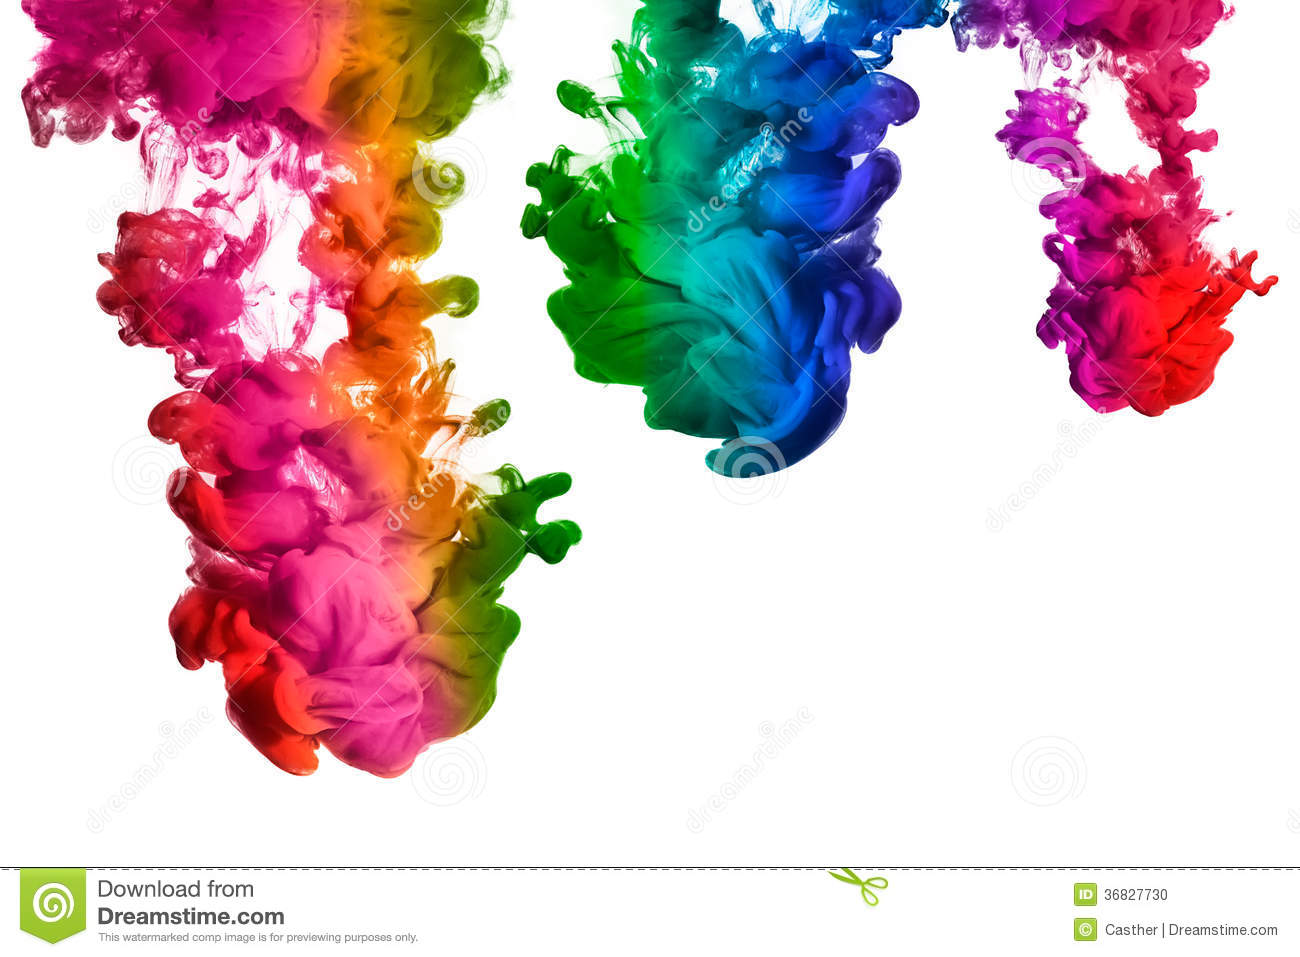 Rainbow Of Acrylic Ink In Water. Color Explosion Stock